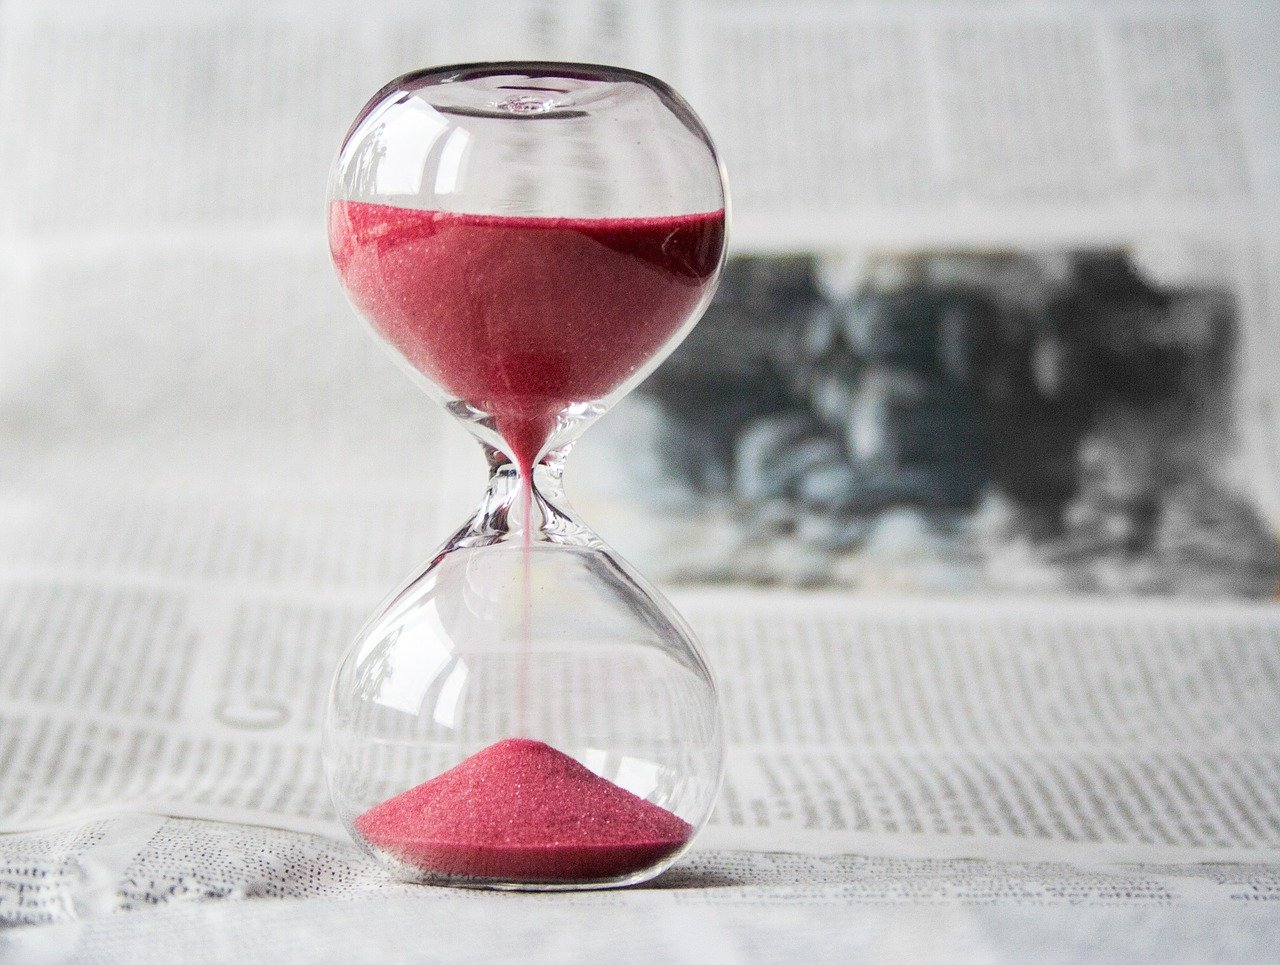 hourglass, time, hours